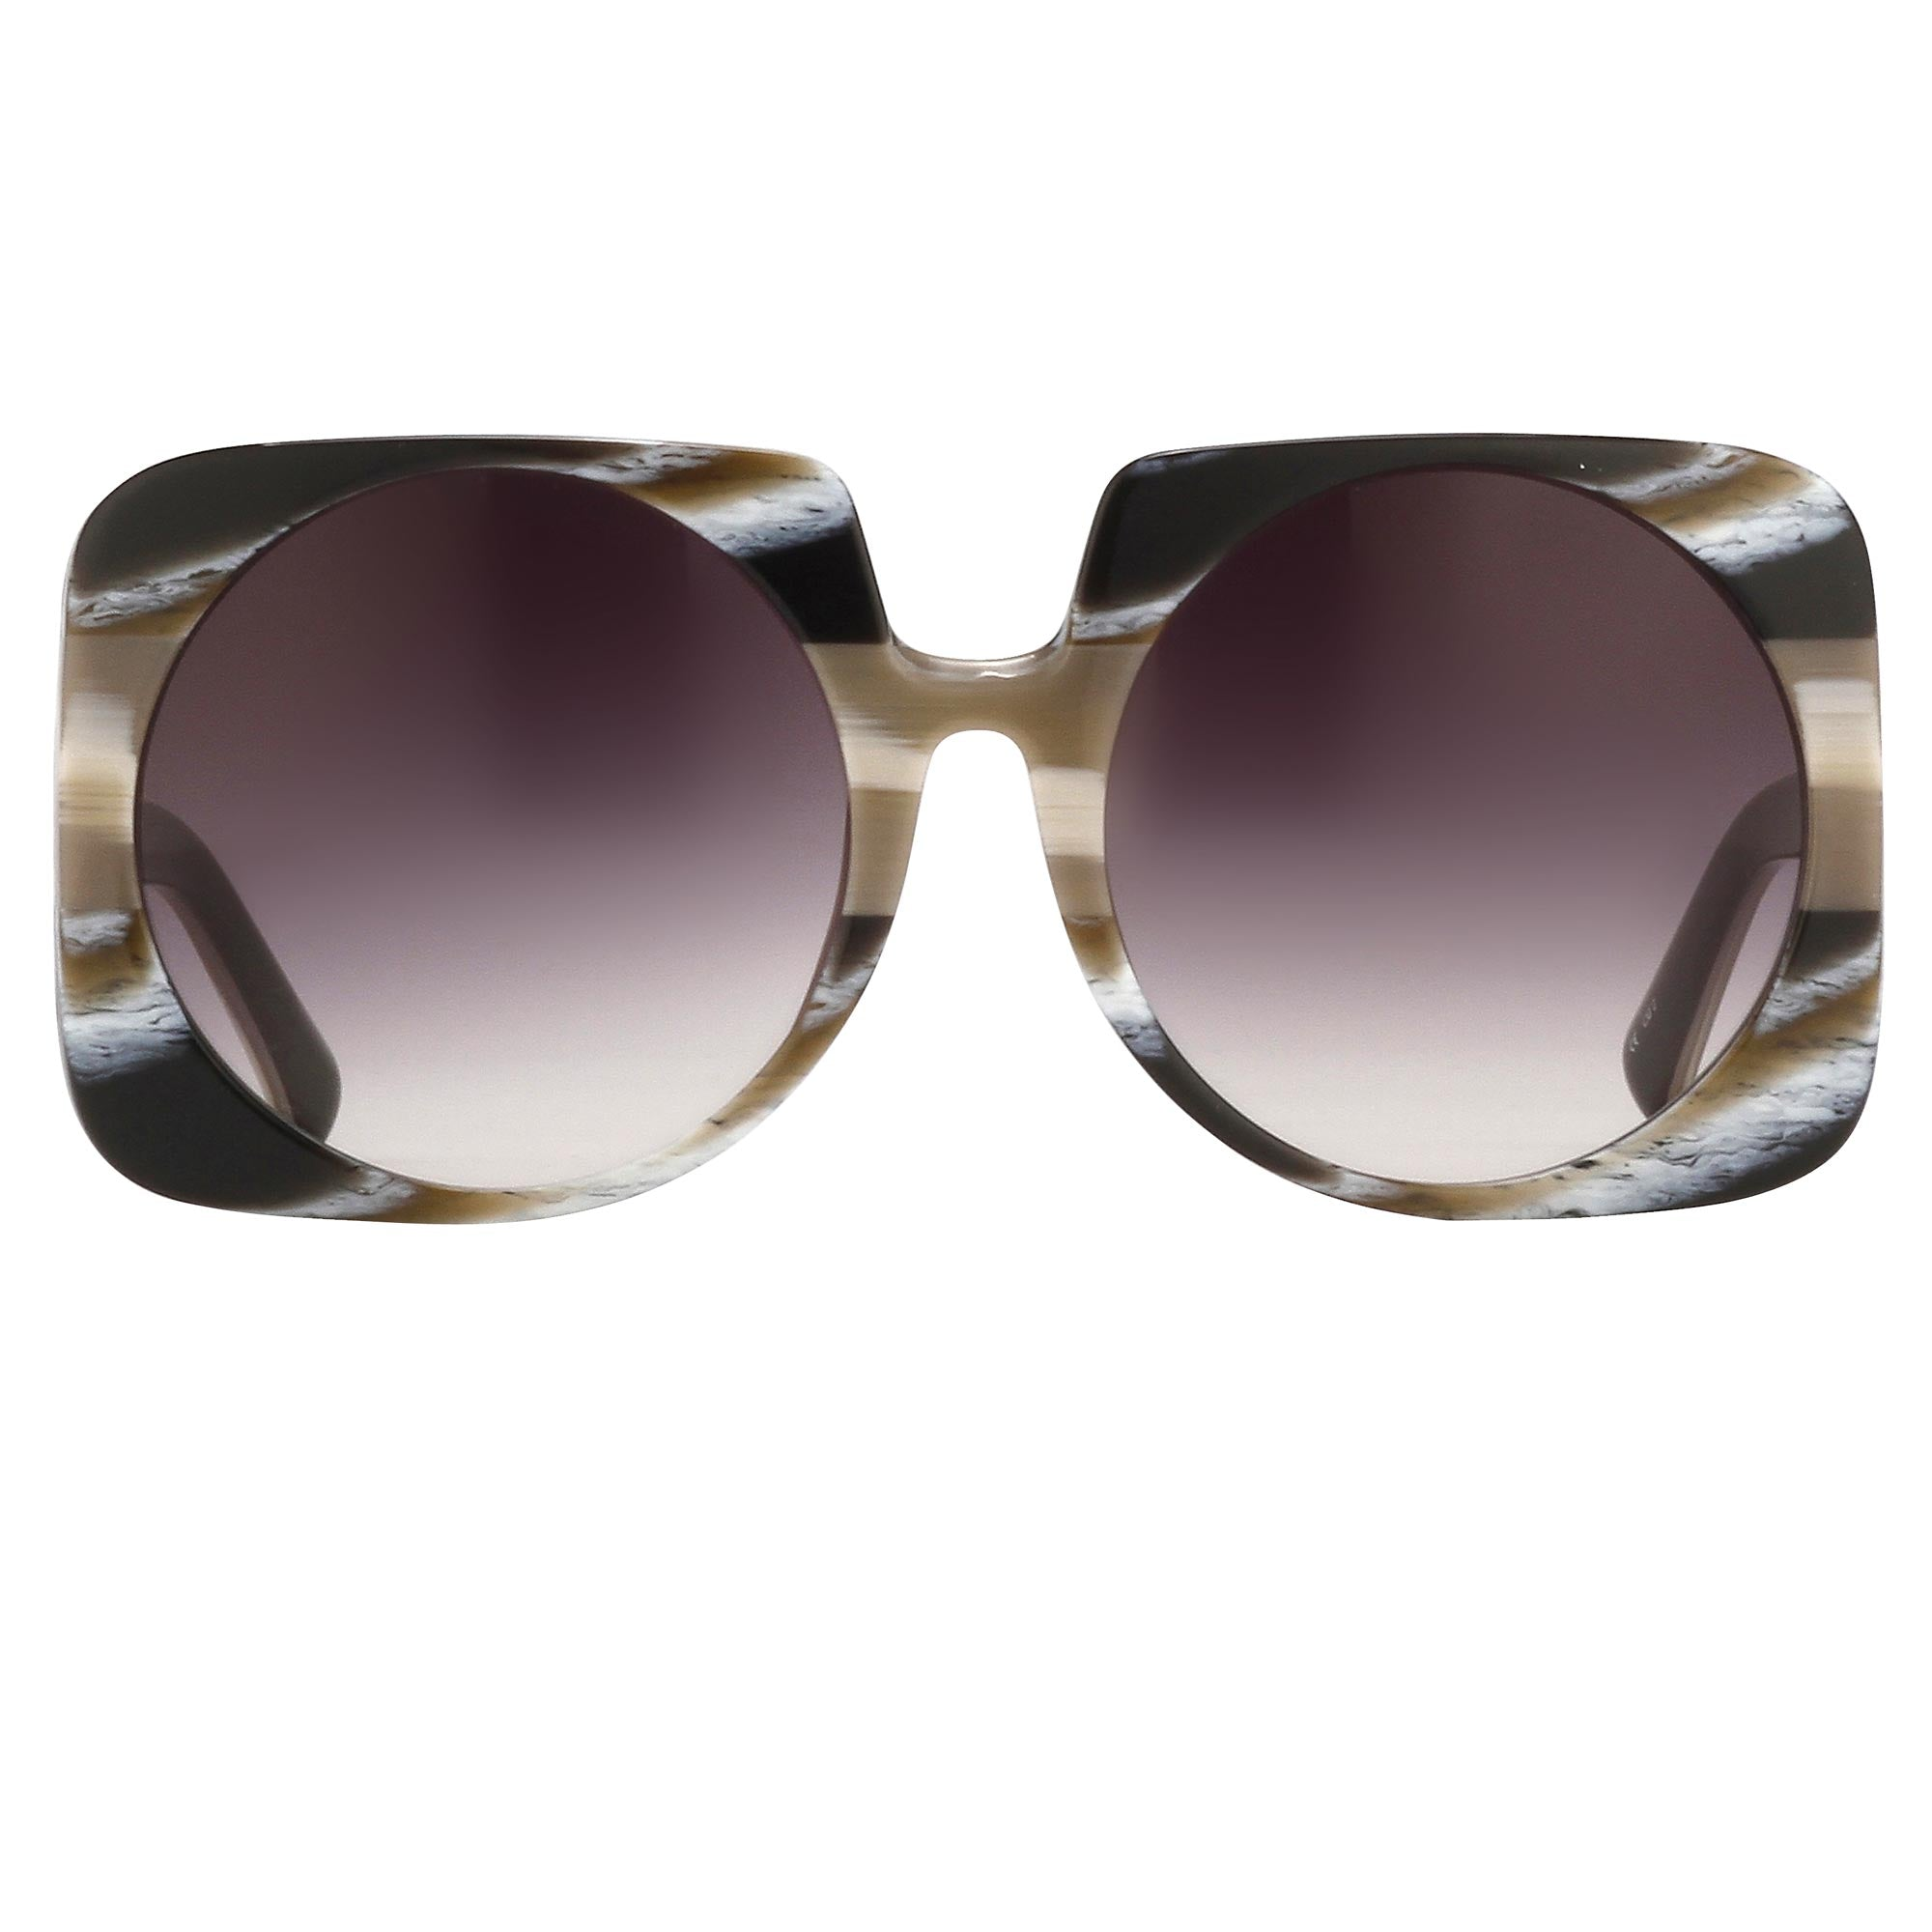 Prabal Gurung Sunglasses Female Square Cream Taupe Horn Category 3 Lenses Grey Graduated PG20C2SUN - Watches & Crystals